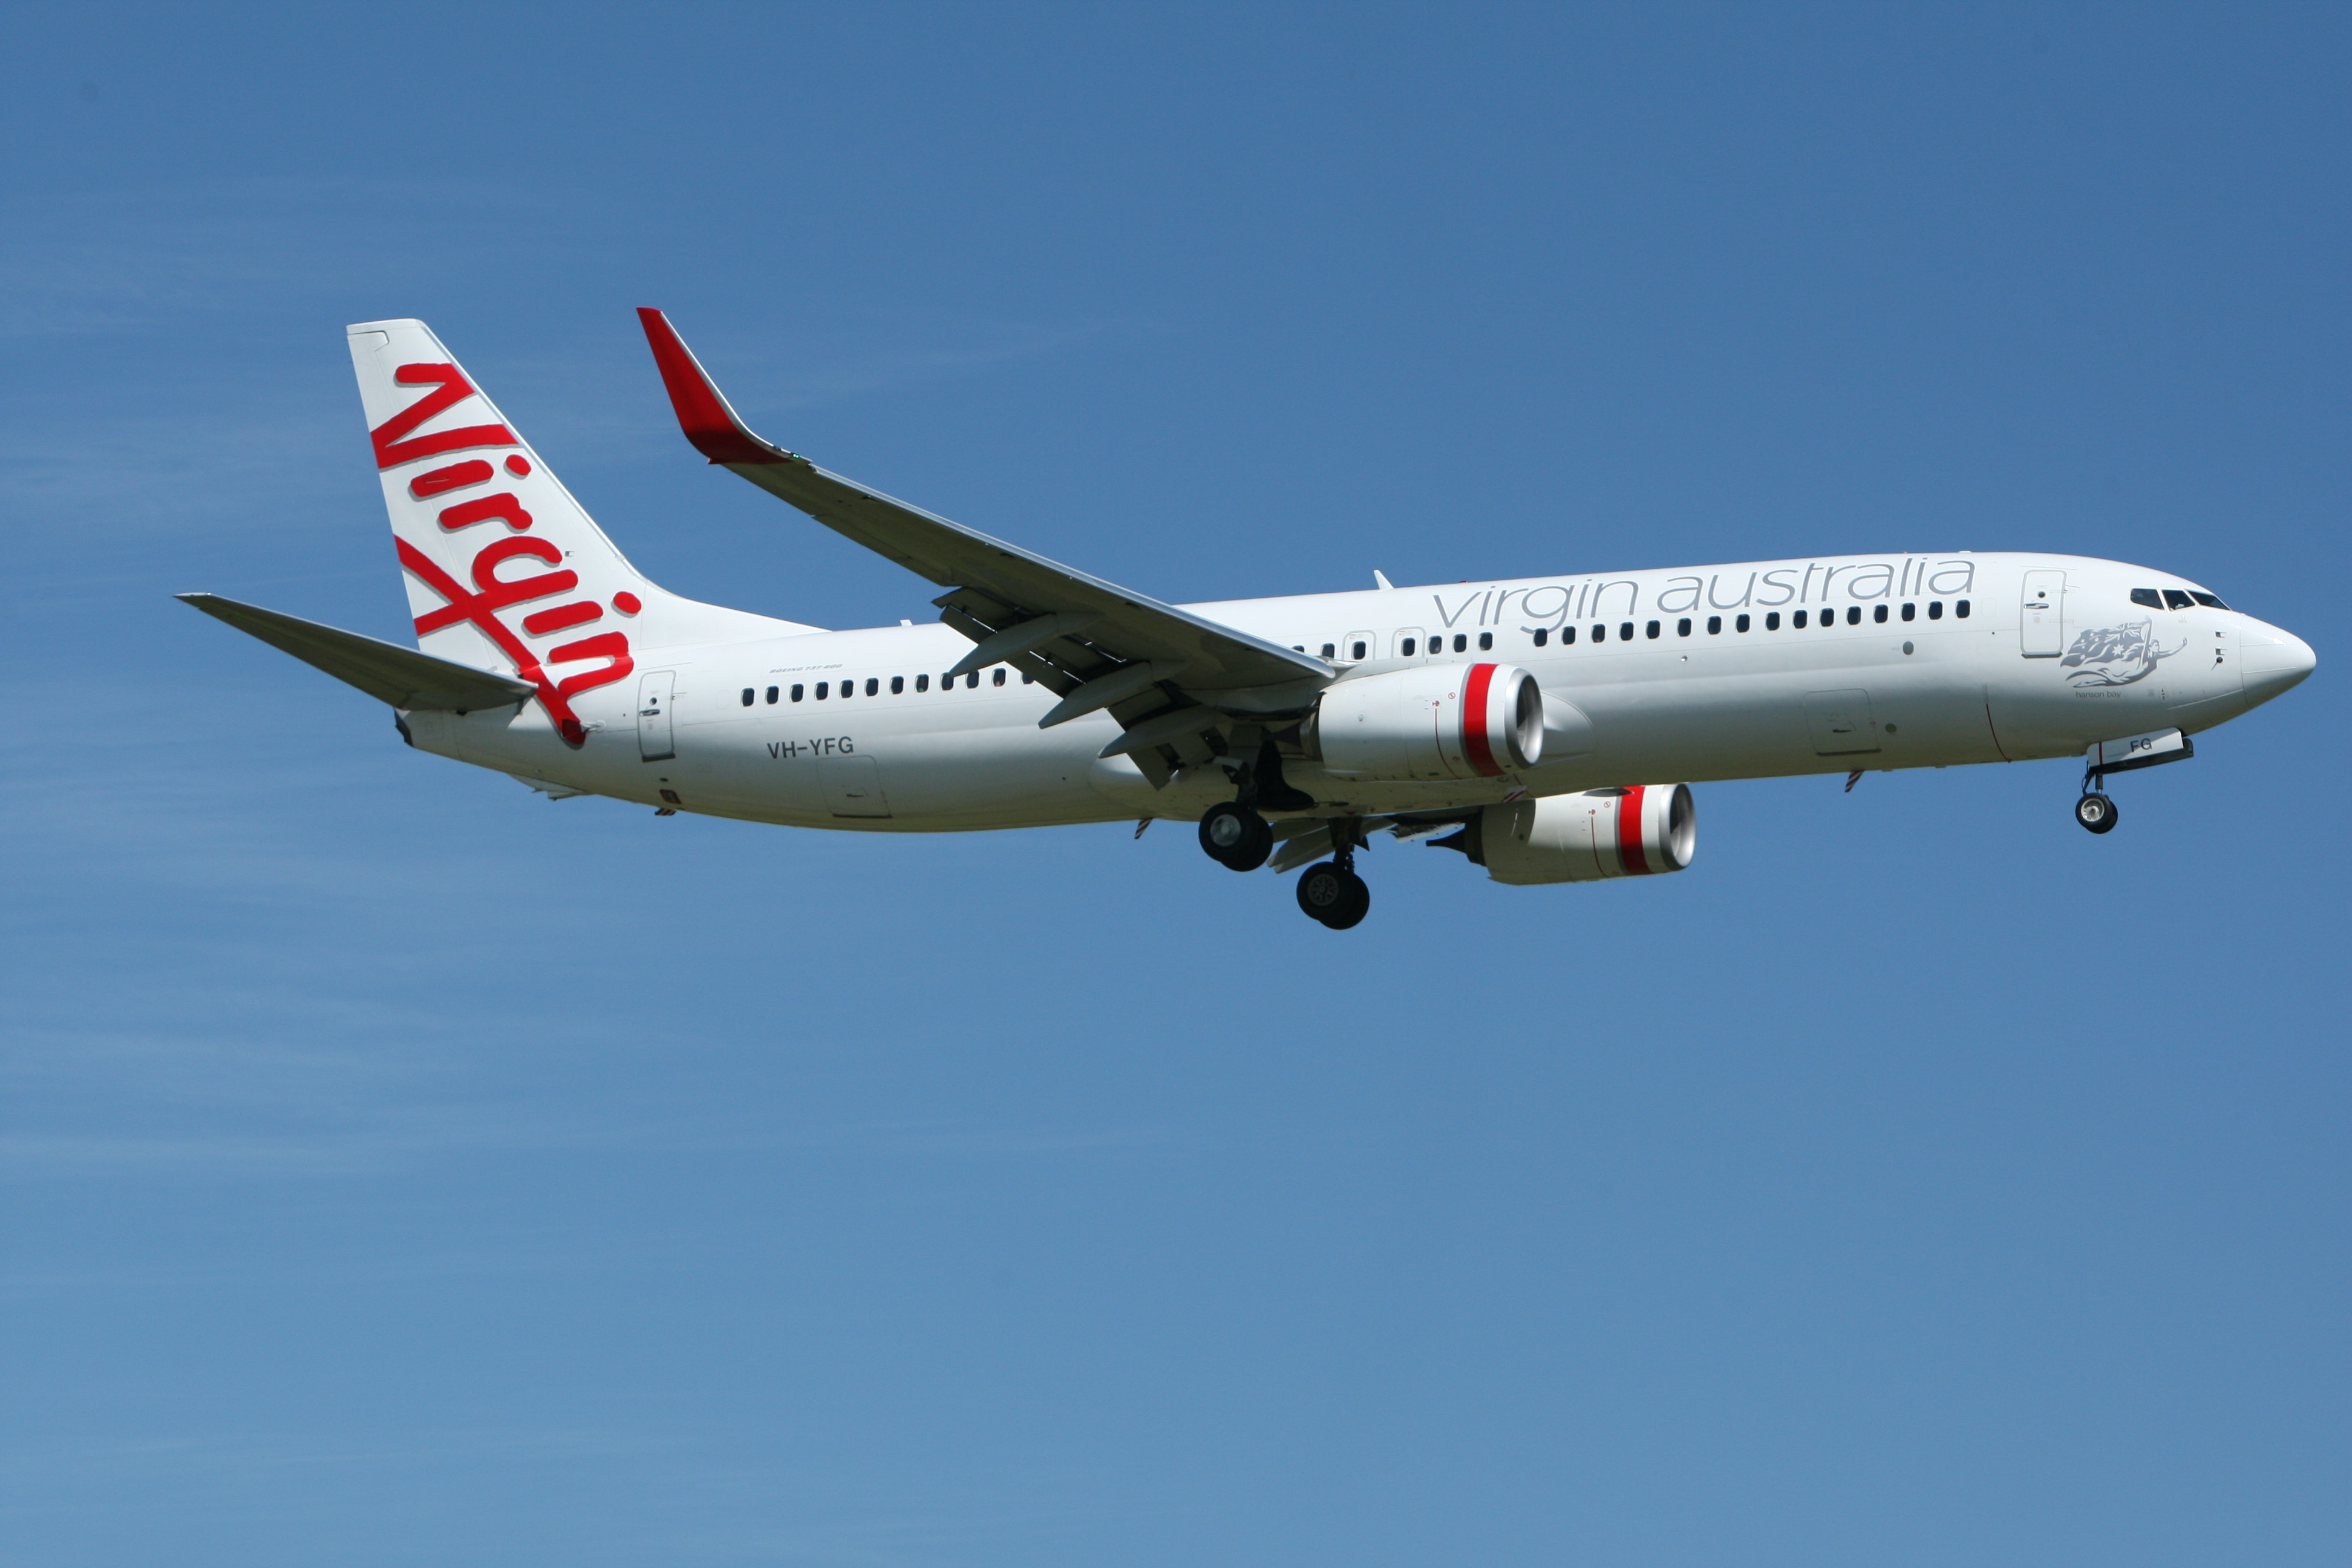 White and Red Qantas Airplane Fly High Under Blue and ...